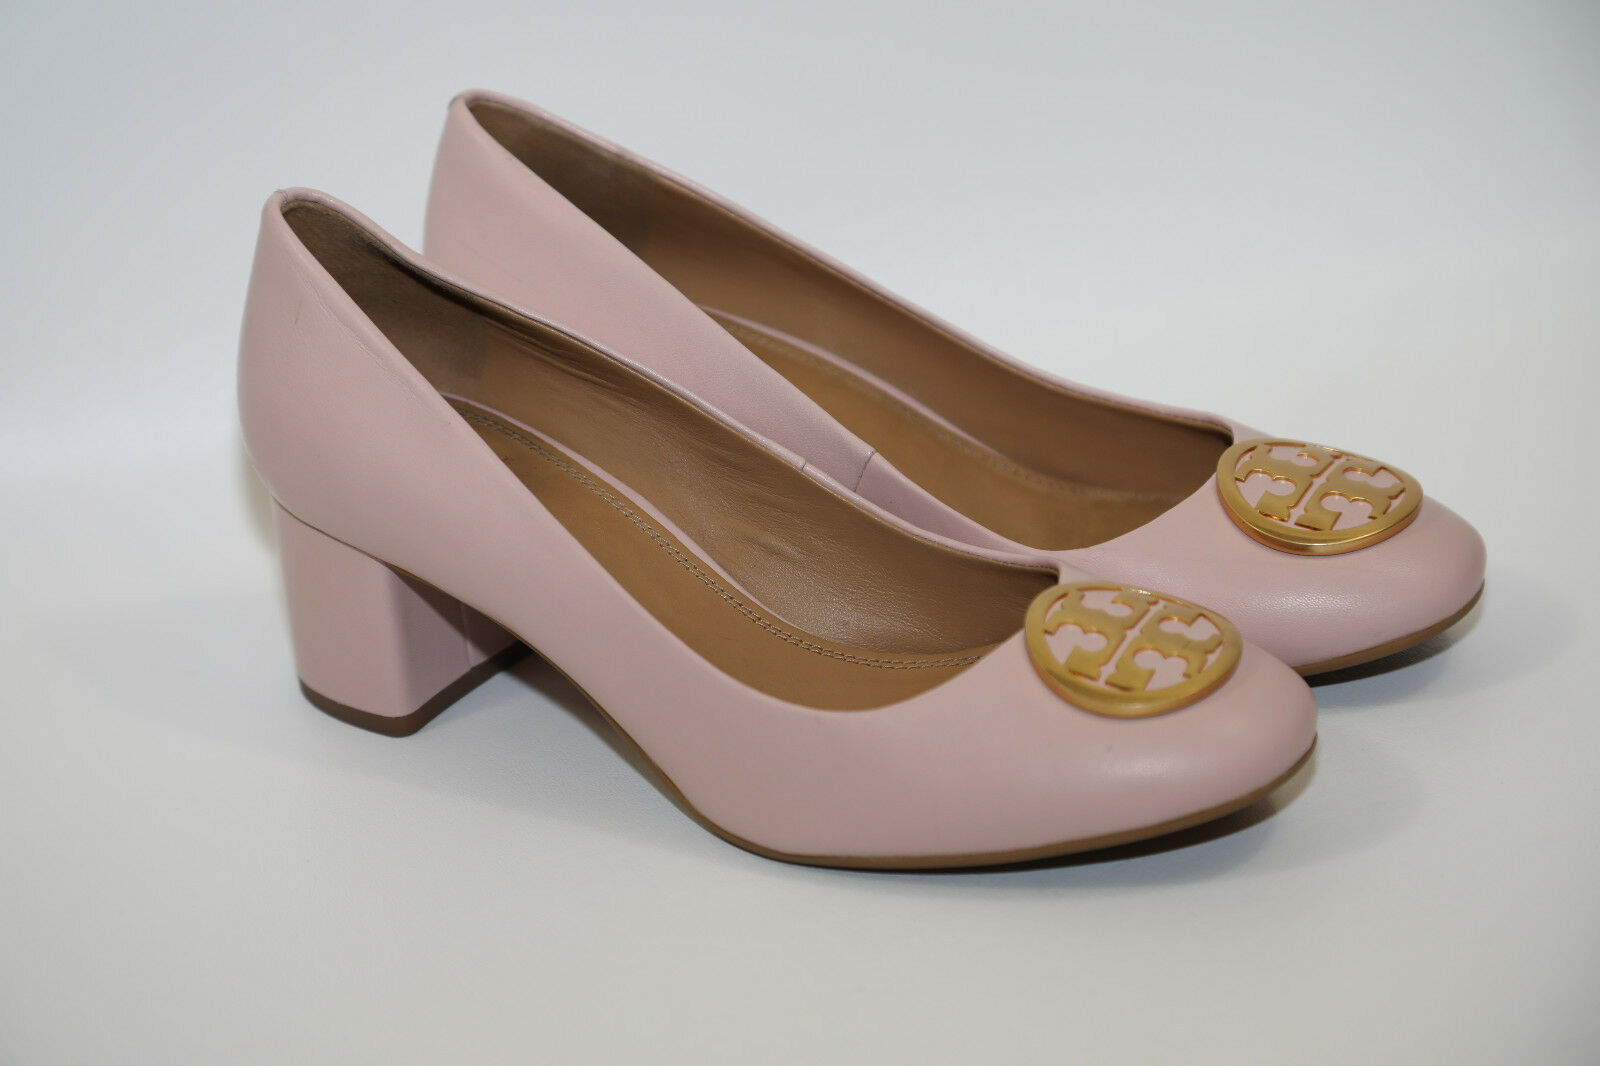 72 Tory Burch Chelsea Leather Pump shoes Size 8.5 M   278 retail